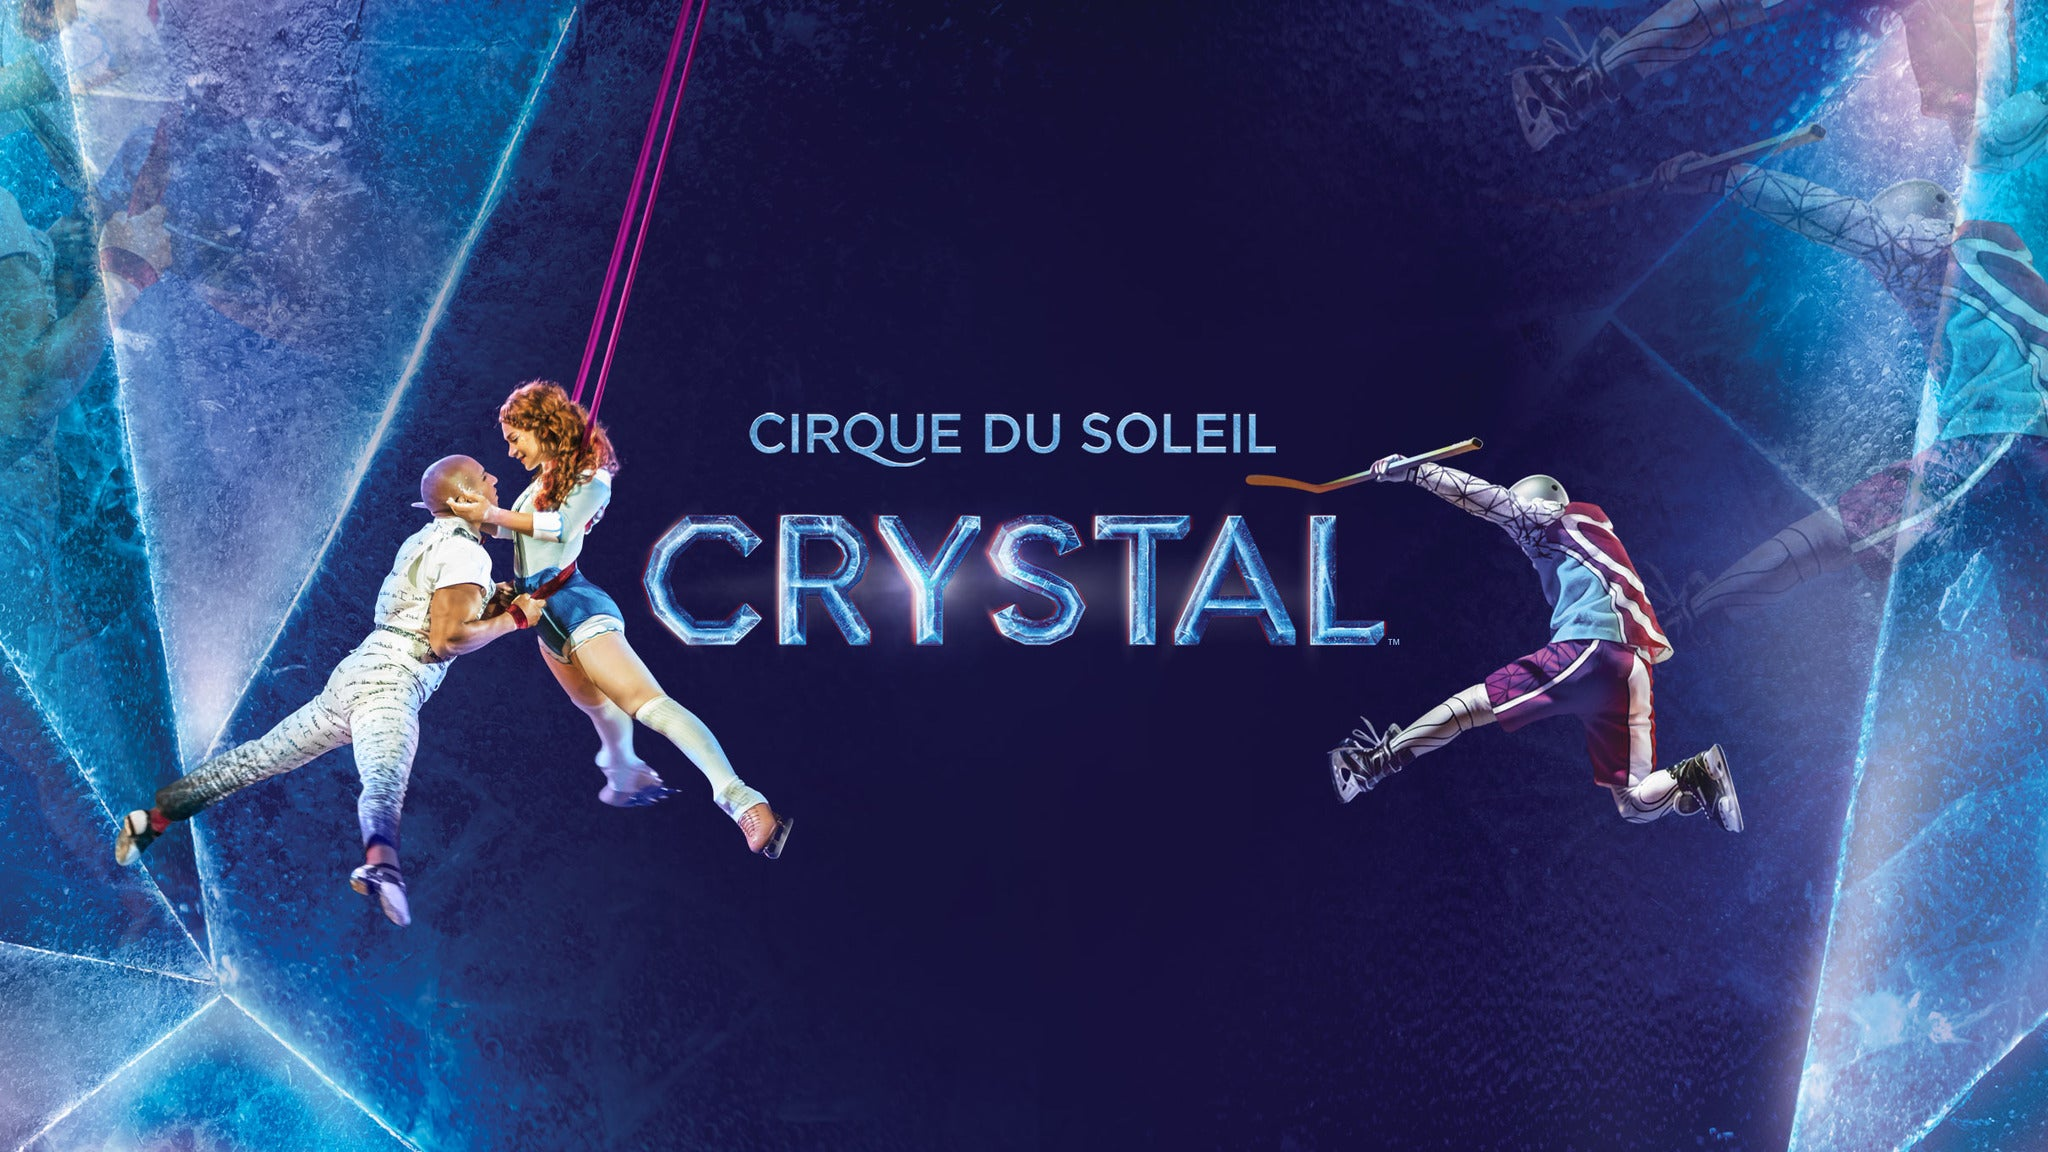 Cirque du Soleil Crystal at Ralph Engelstad Arena - Grand Forks, ND 58202